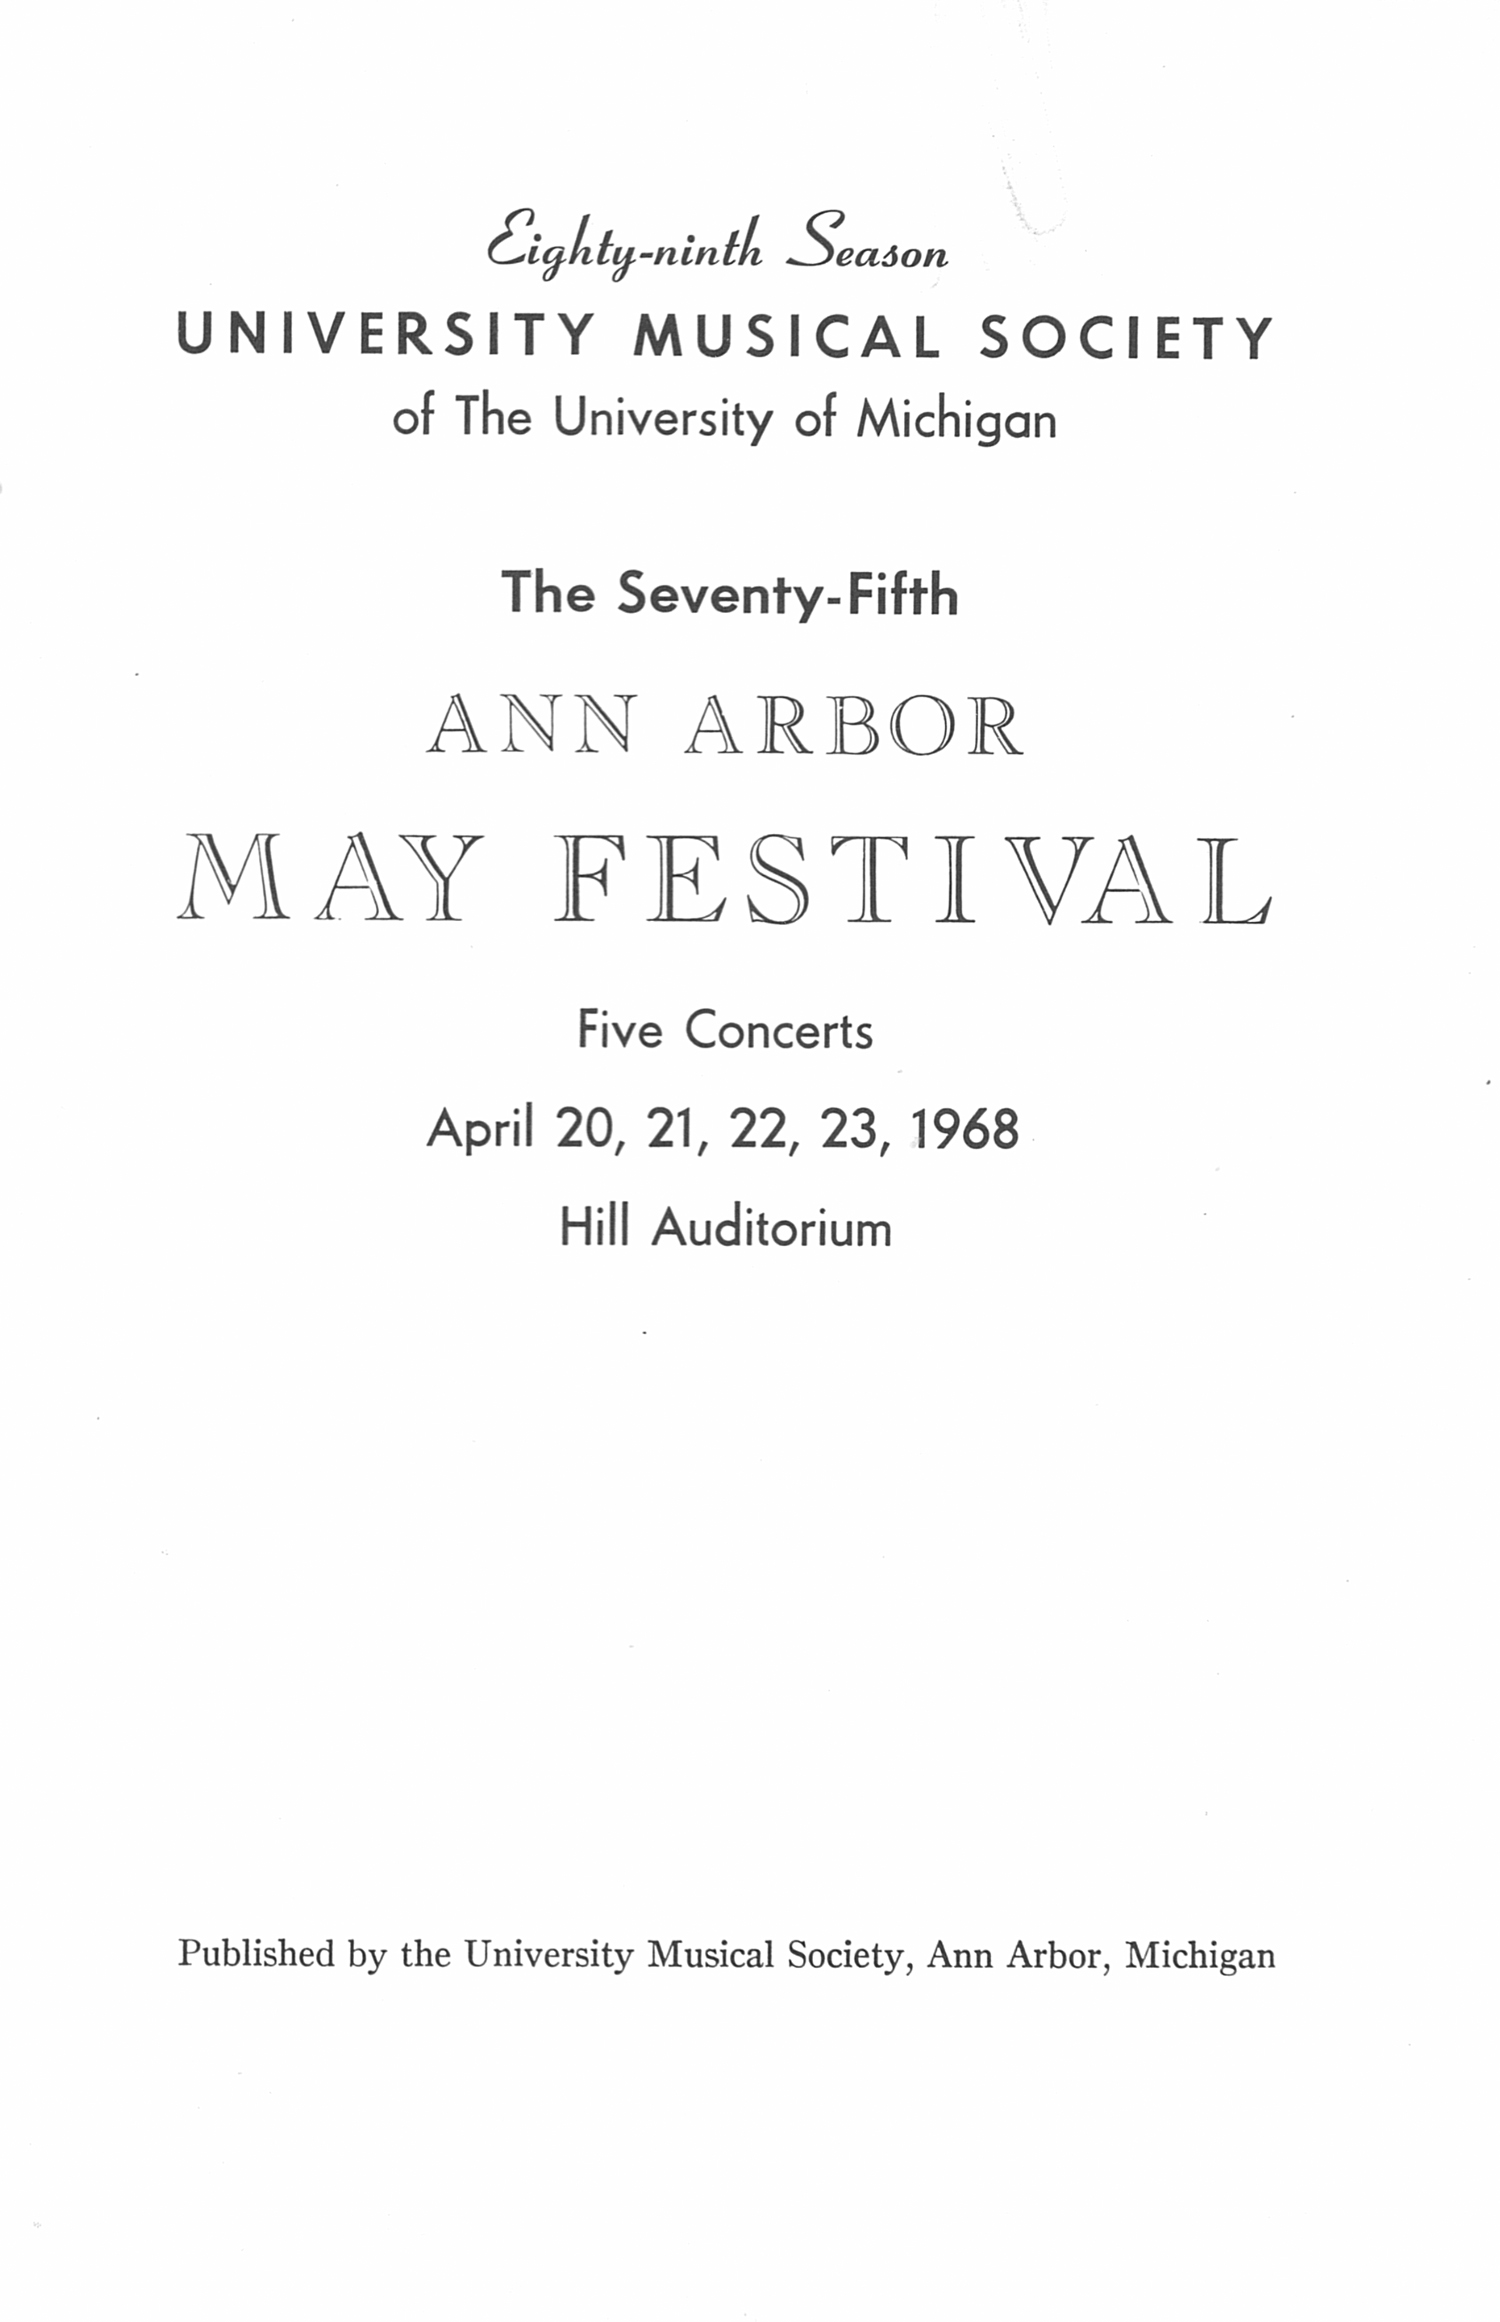 UMS Concert Program, April 20, 21, 22, 23, 1968: The Seventy-fifth Ann Arbor May Festival -- The Philadelphia Orchestra image